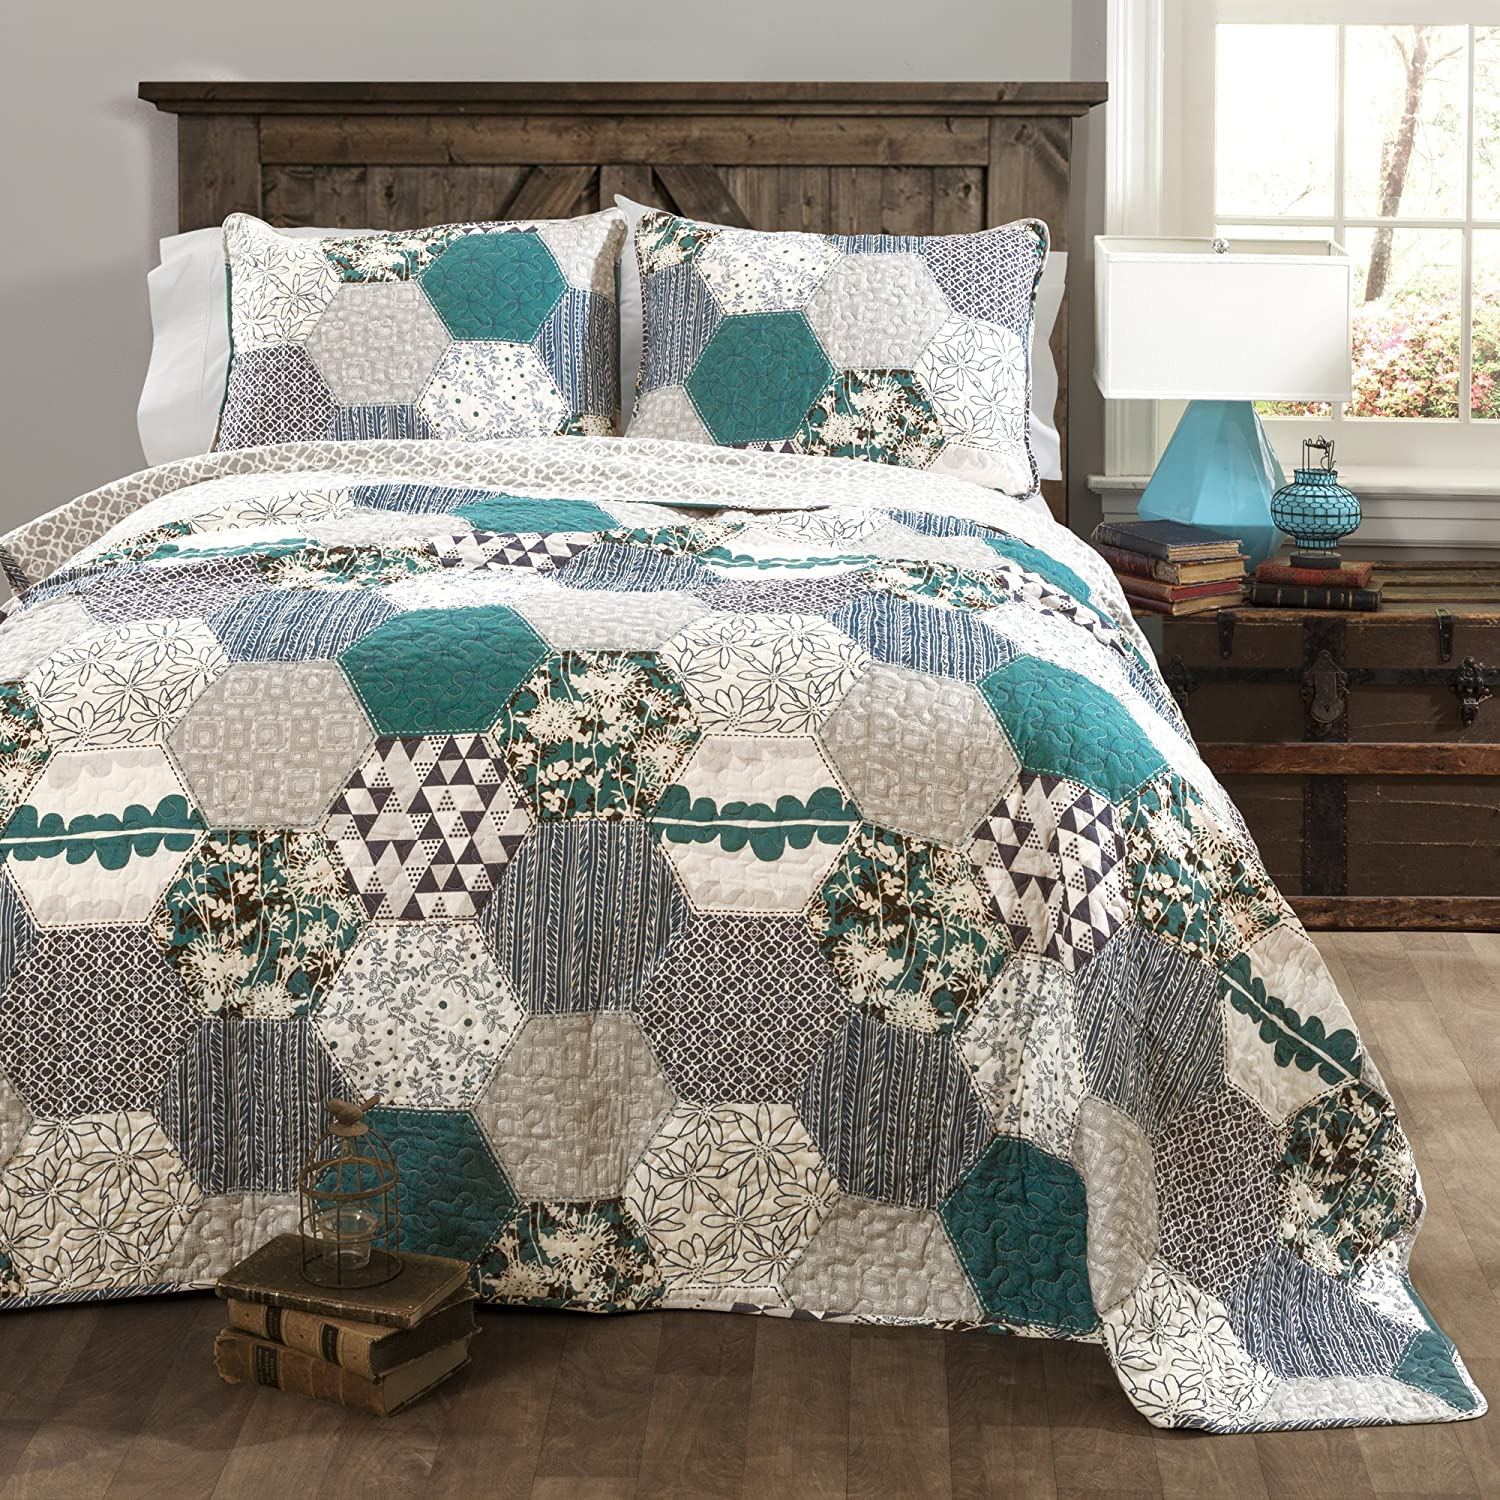 Lush Decor Briley Quilt 3 Piece Reversible Print Hexagon Pattern Patchwork Neutral Bedding Set, King, Turquoise Blue